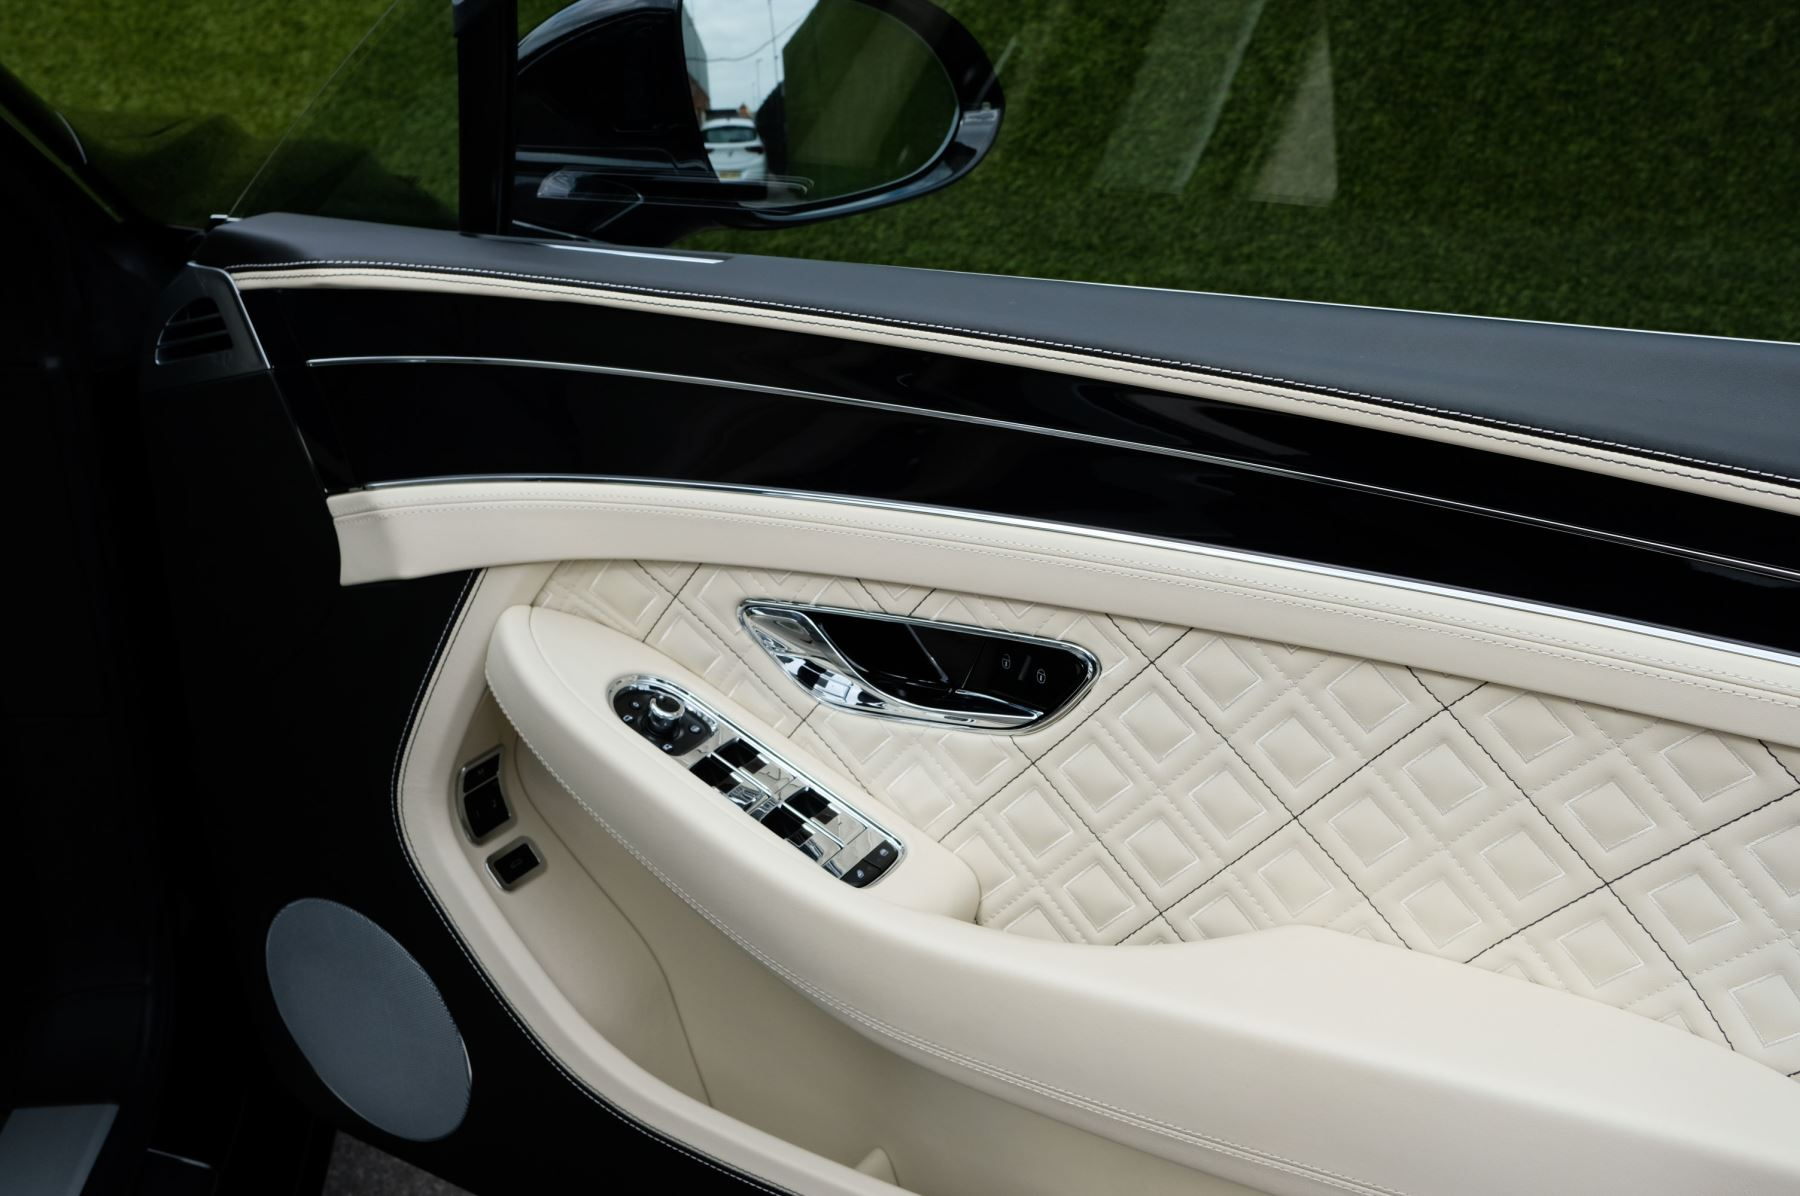 Bentley Continental GT 6.0 W12 1st Edition - Comfort Seating - Touring Specification image 17